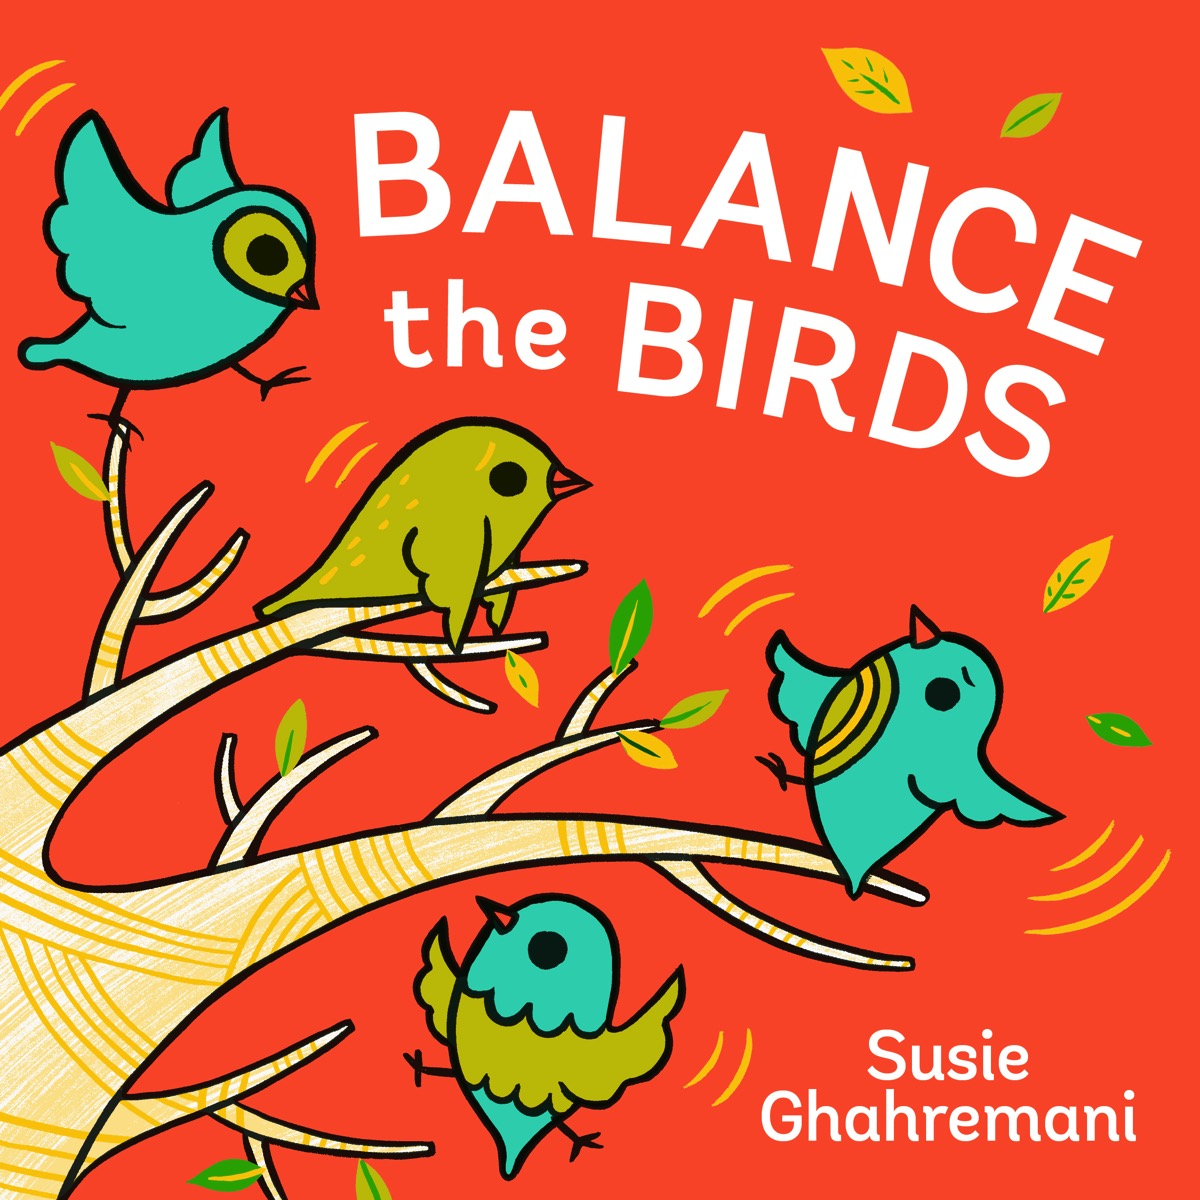 Balance the Birds by Susie Ghahremani